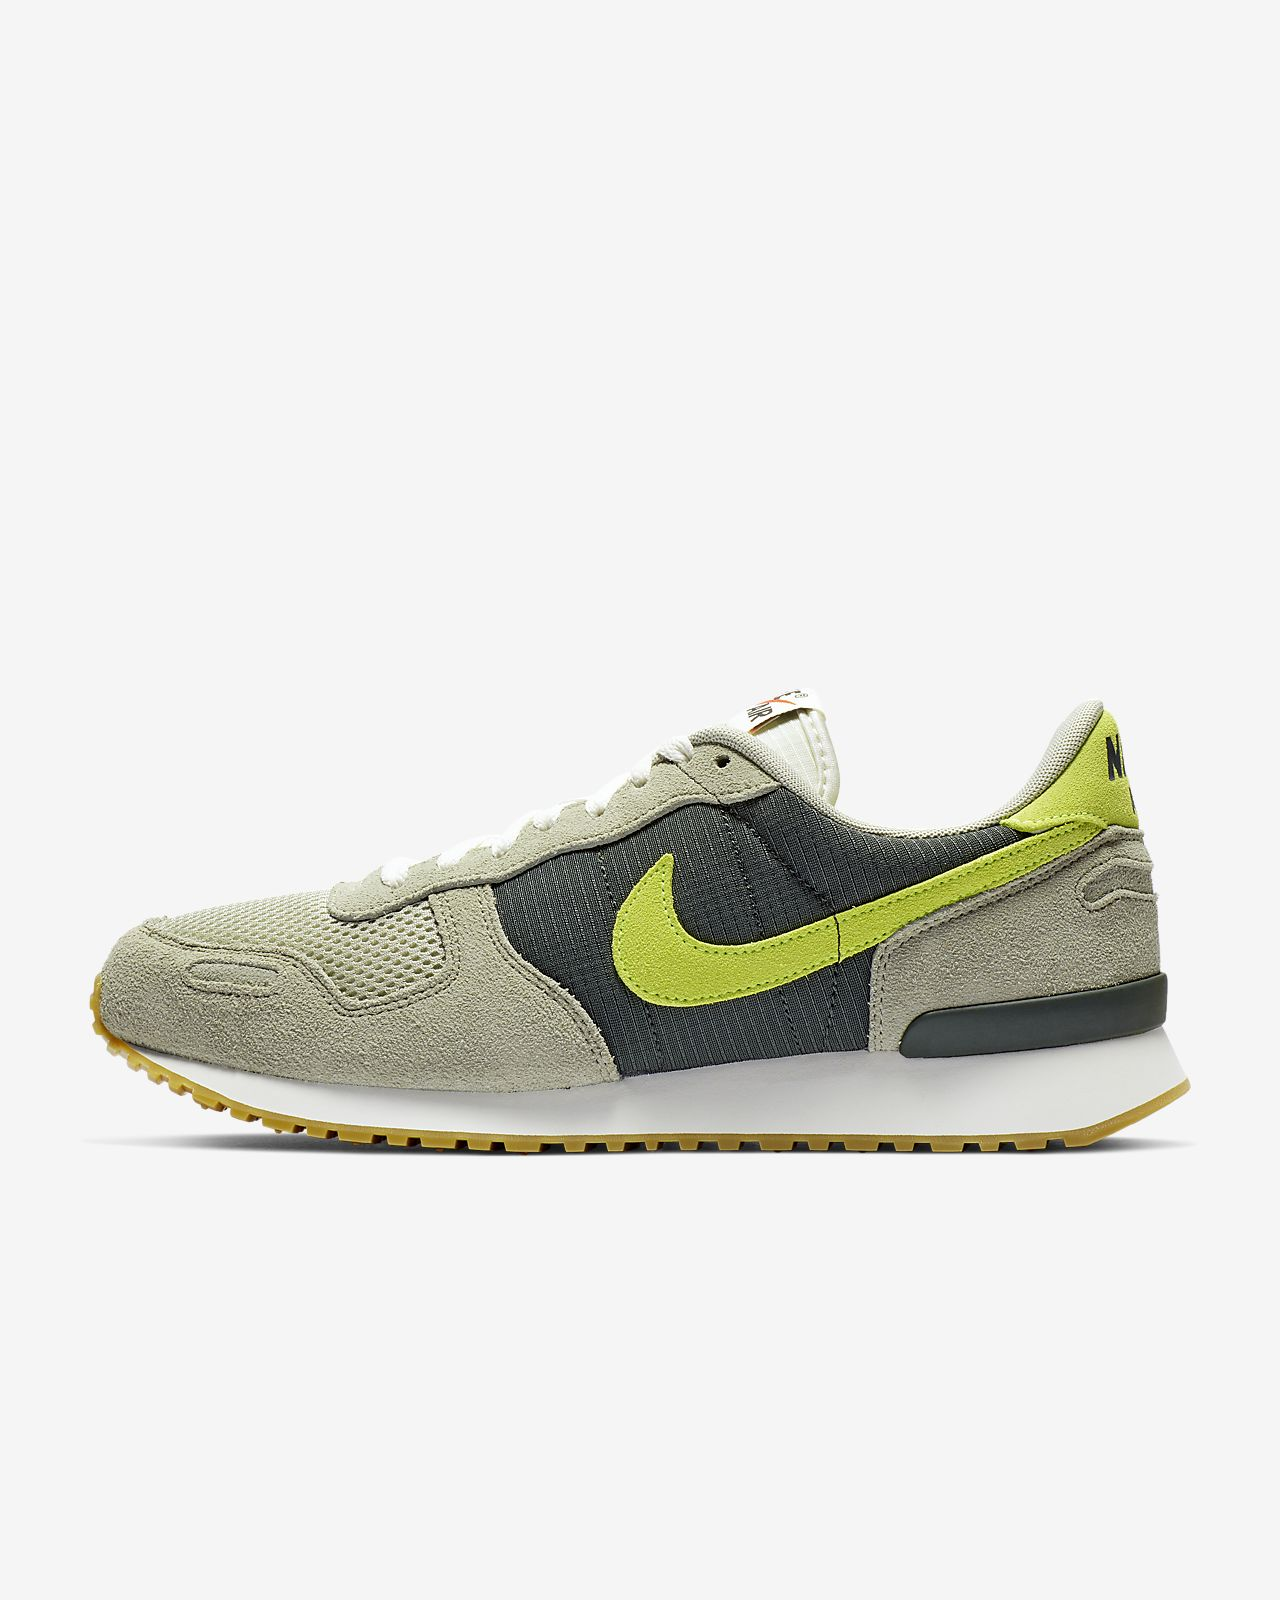 best website a9d3e c8d00 ... Nike Air Vortex - sko til mænd